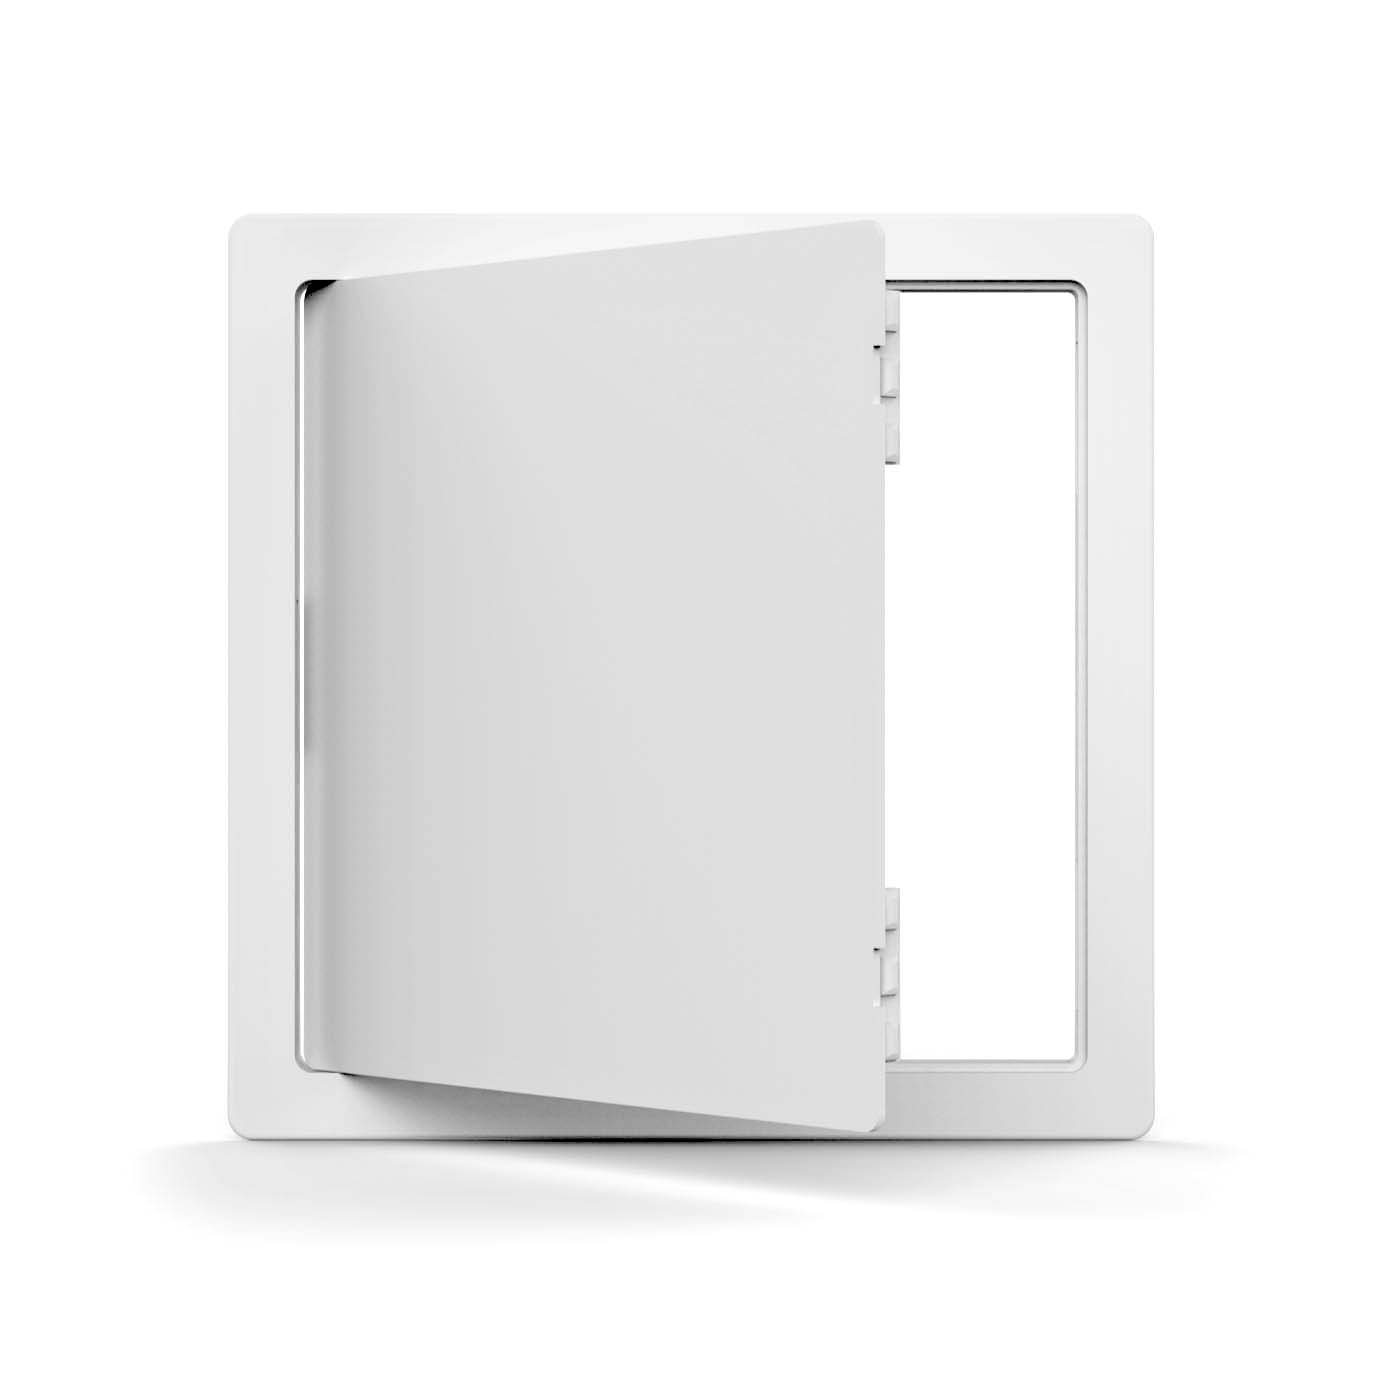 Acudor PA1212 Pa-3000 Plastic Access Door 12x12, Plastic, 14'' Height by Acudor